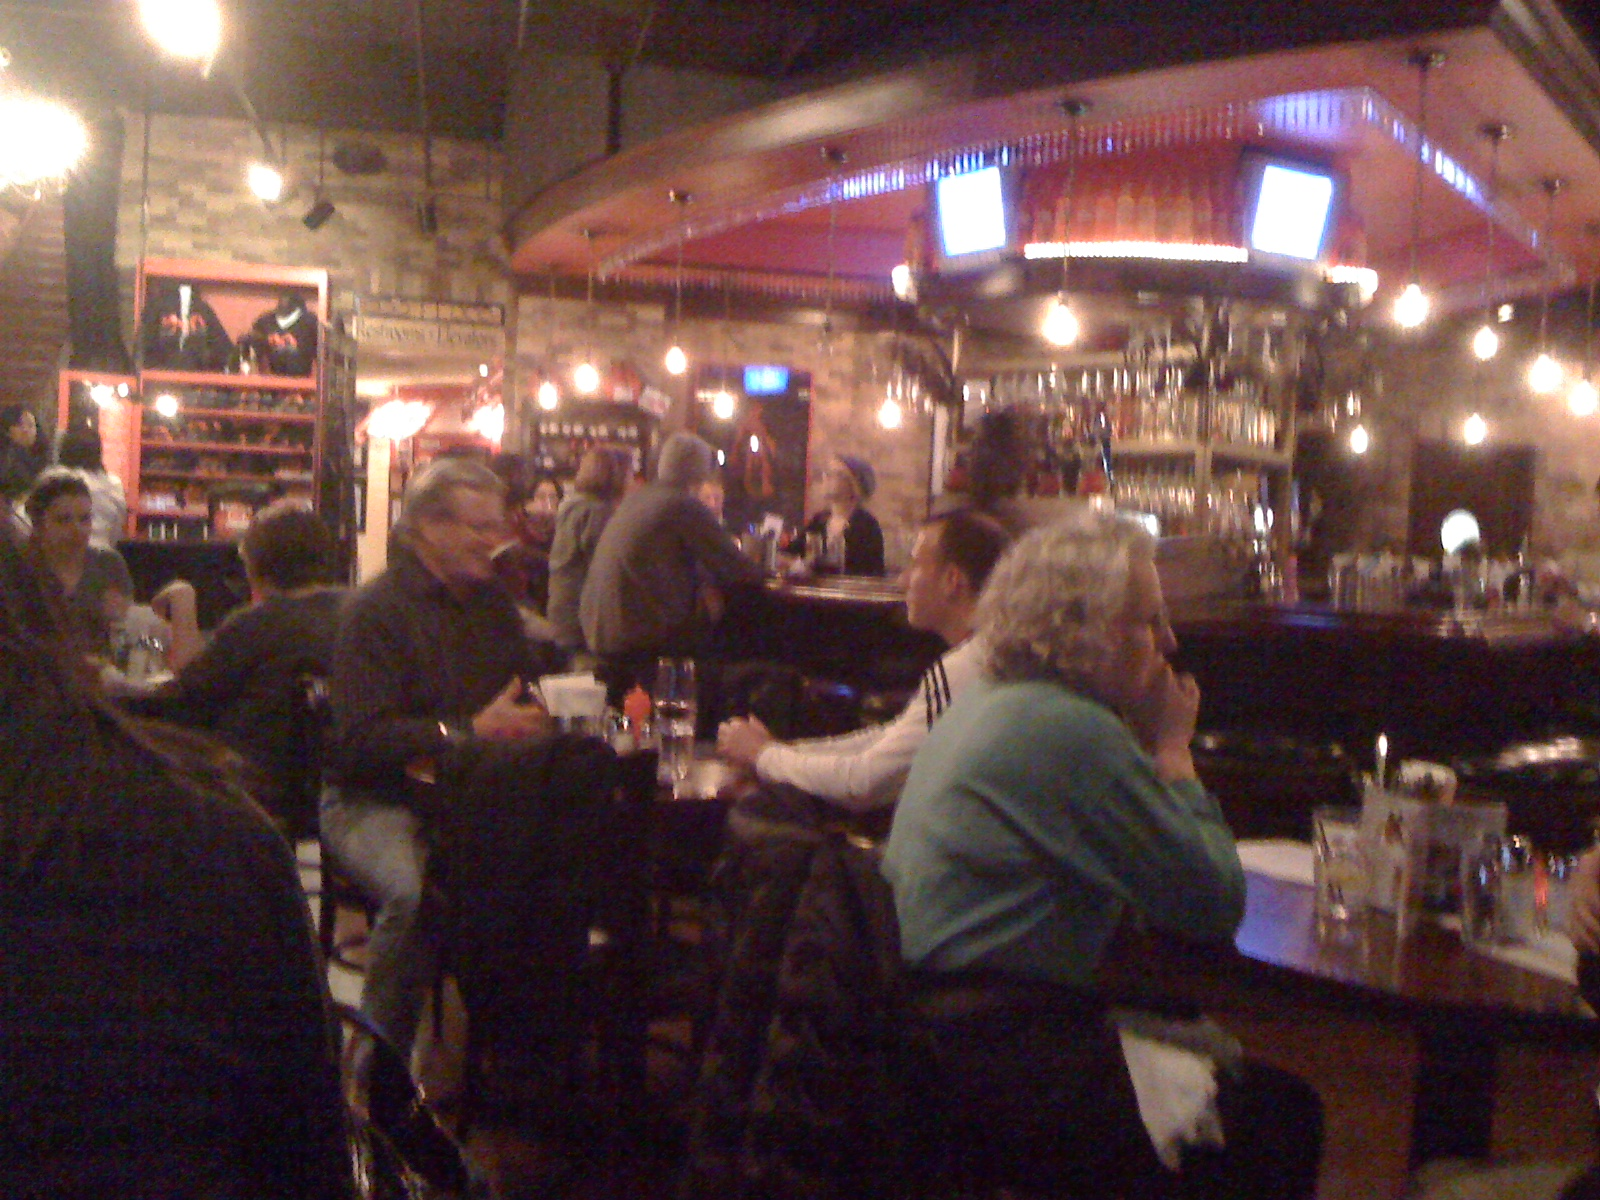 msp musings: dinner at hell's kitchen